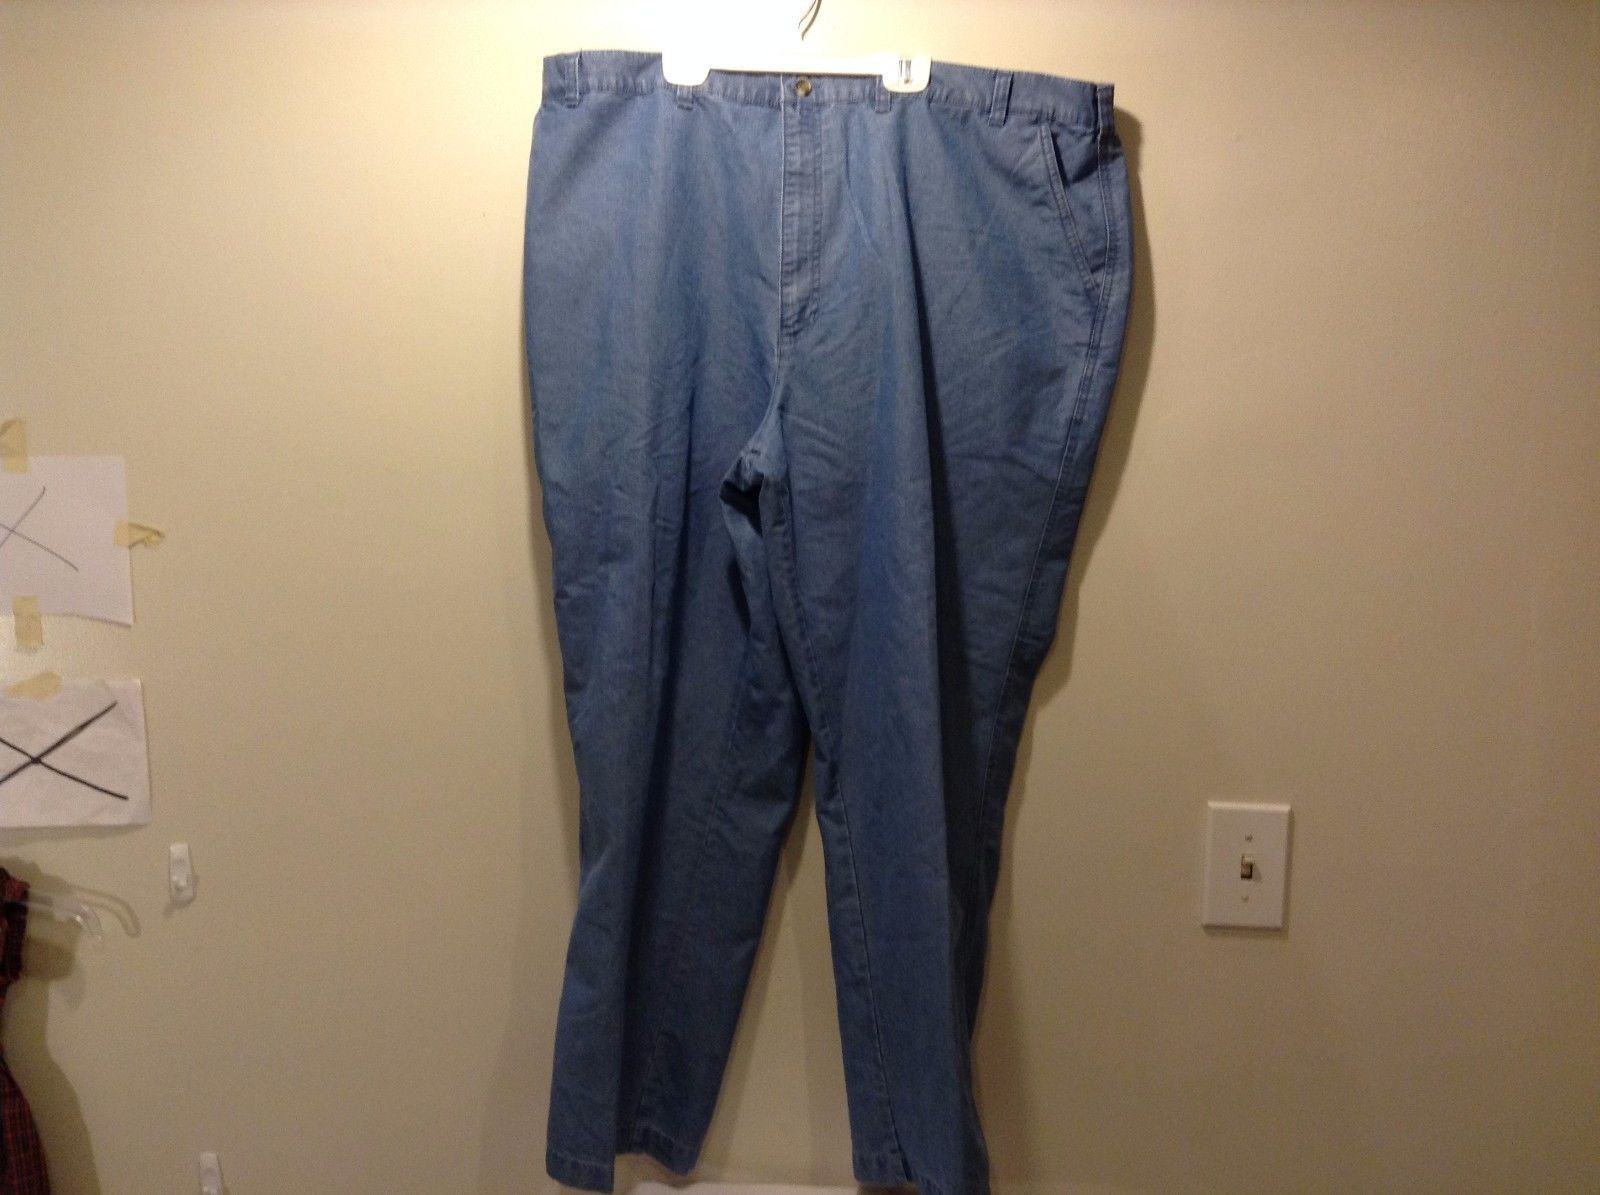 Used Good Condition Light Blue David Taylor Jeans Poly Cotton Blend Unisex